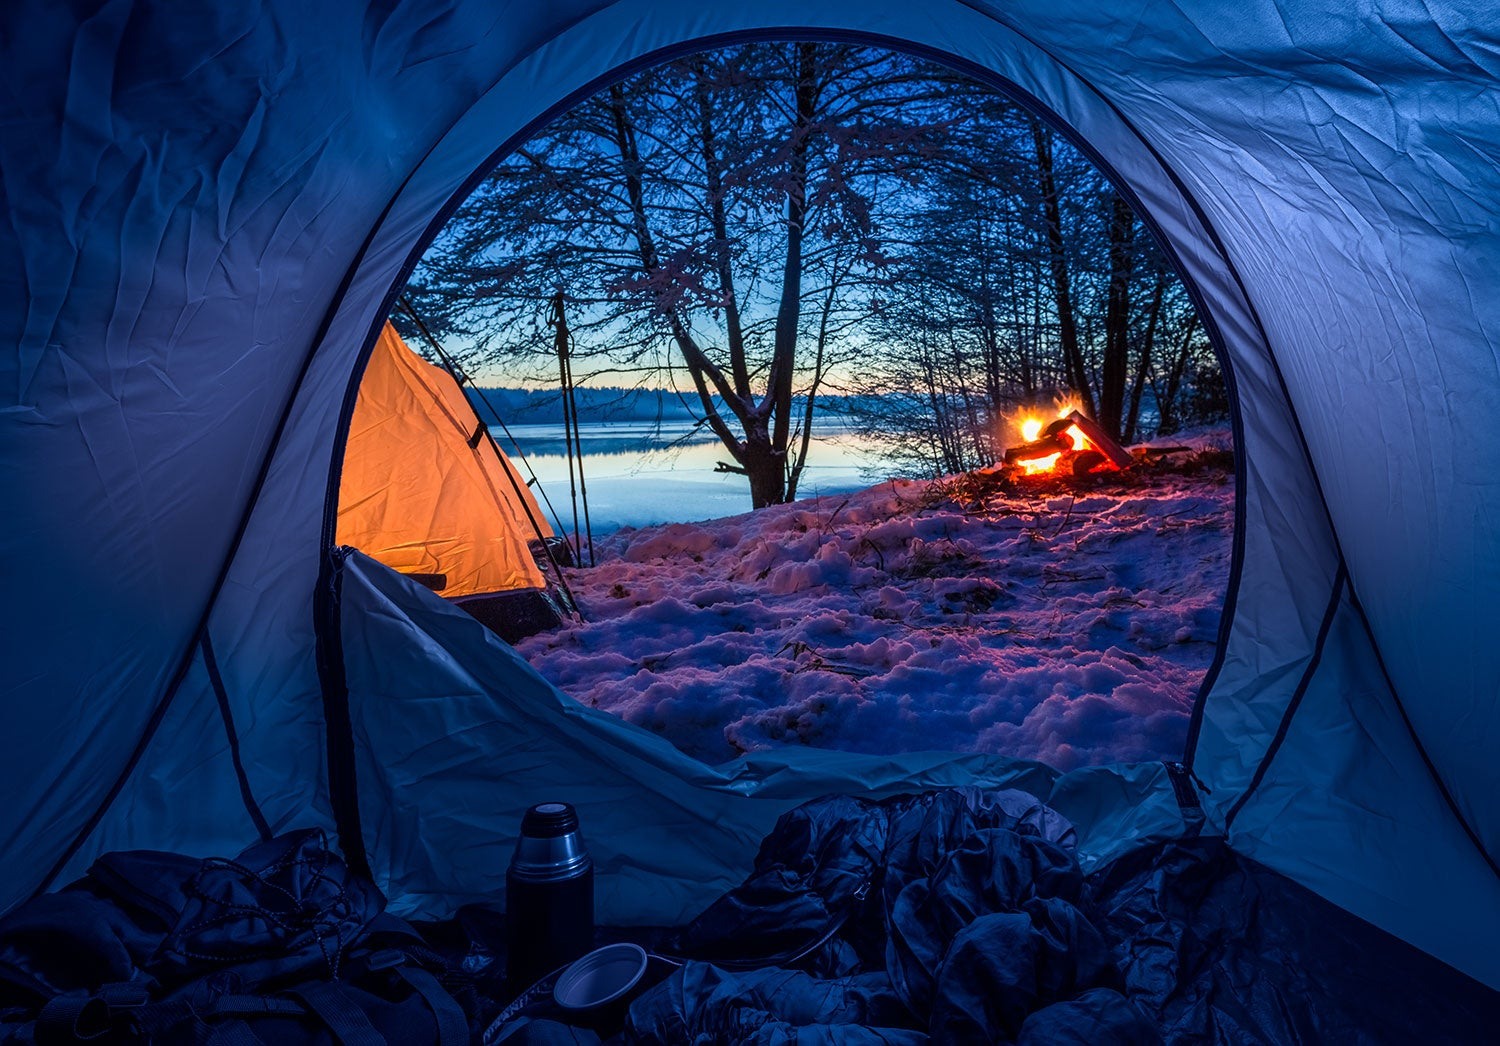 Save on Winter Camping Gear with REI's Gear Up Get Out Sale